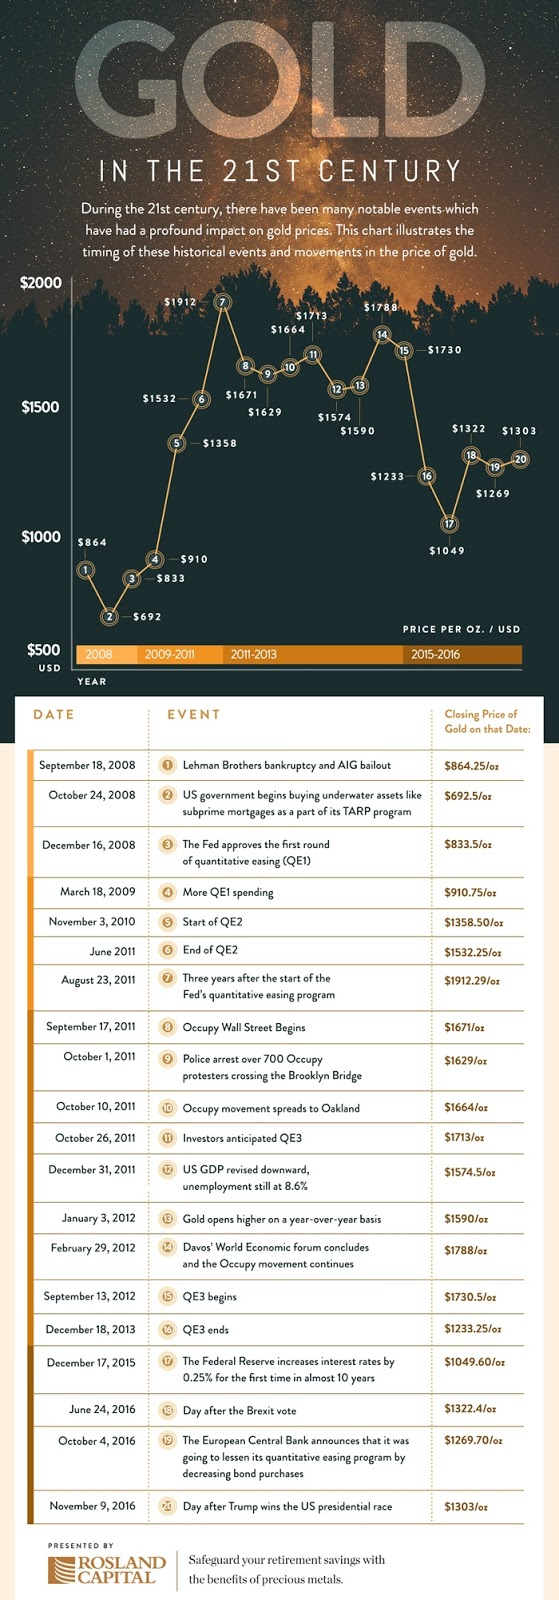 gold performance chart time line